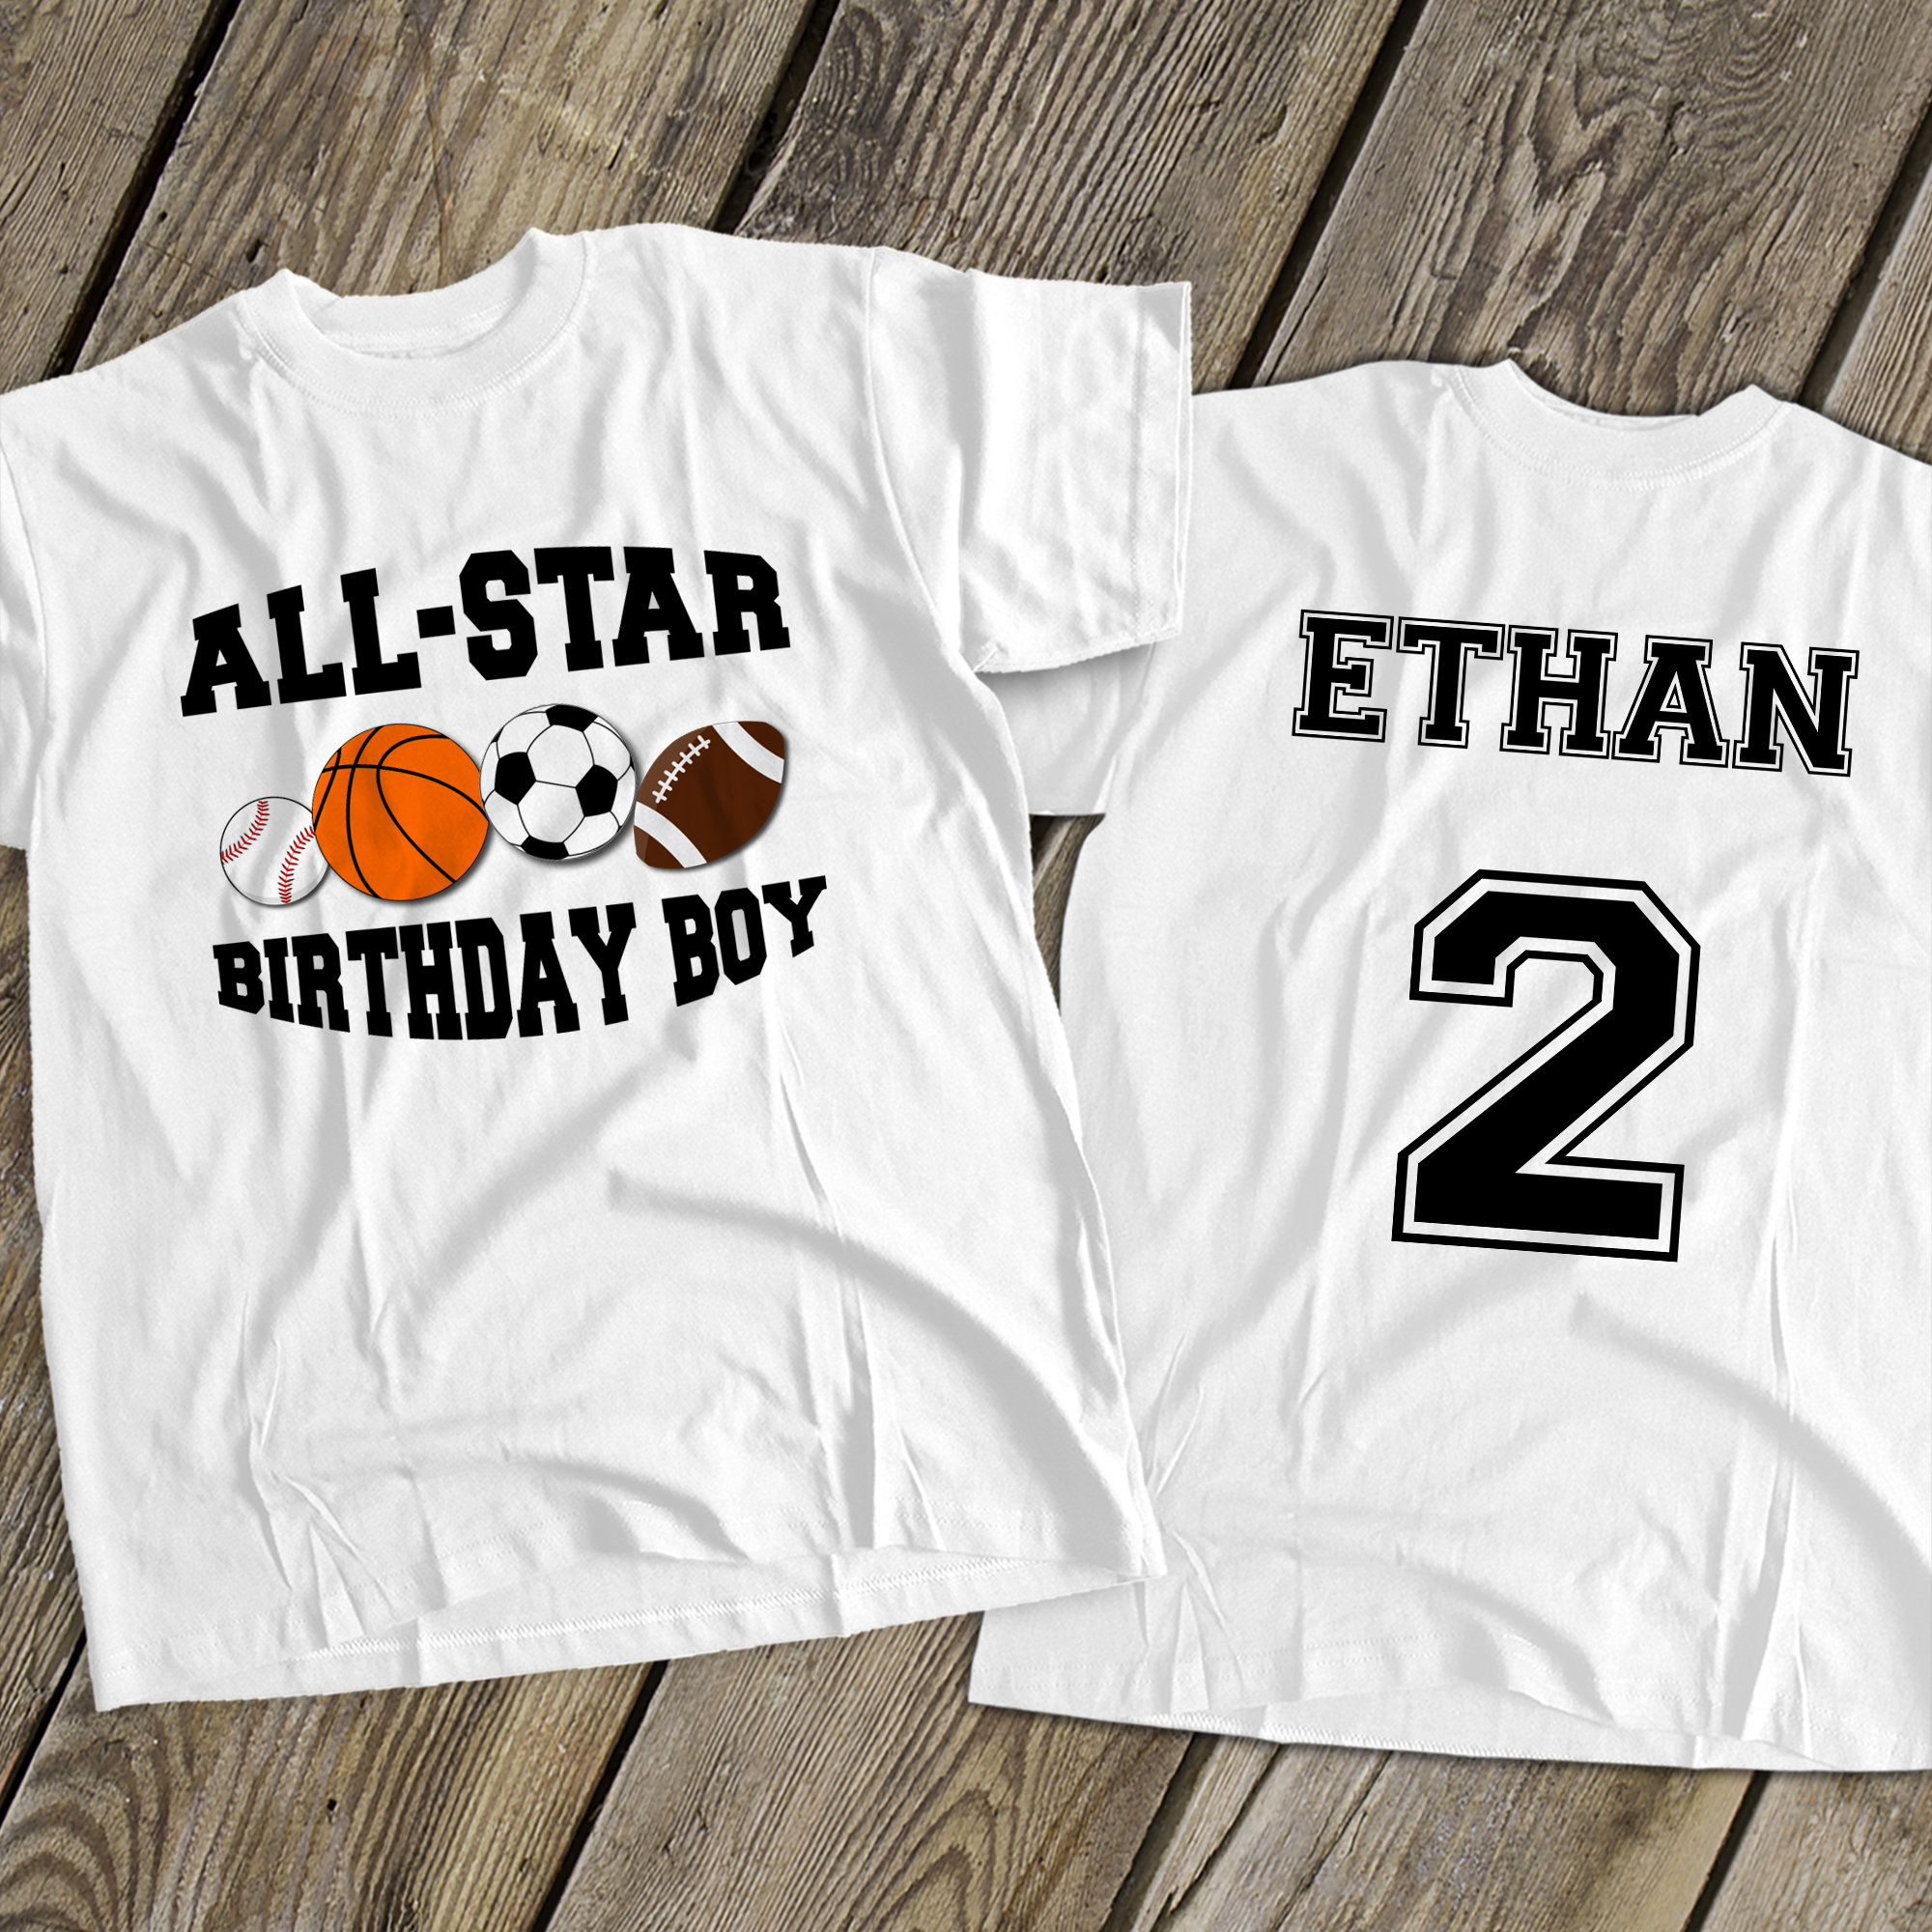 Sports Birthday Boy Shirt Soccer Baseball Football Basketball Sports Theme Tshirt Birthday Shirt Mbd-060 Unisex Tshirt